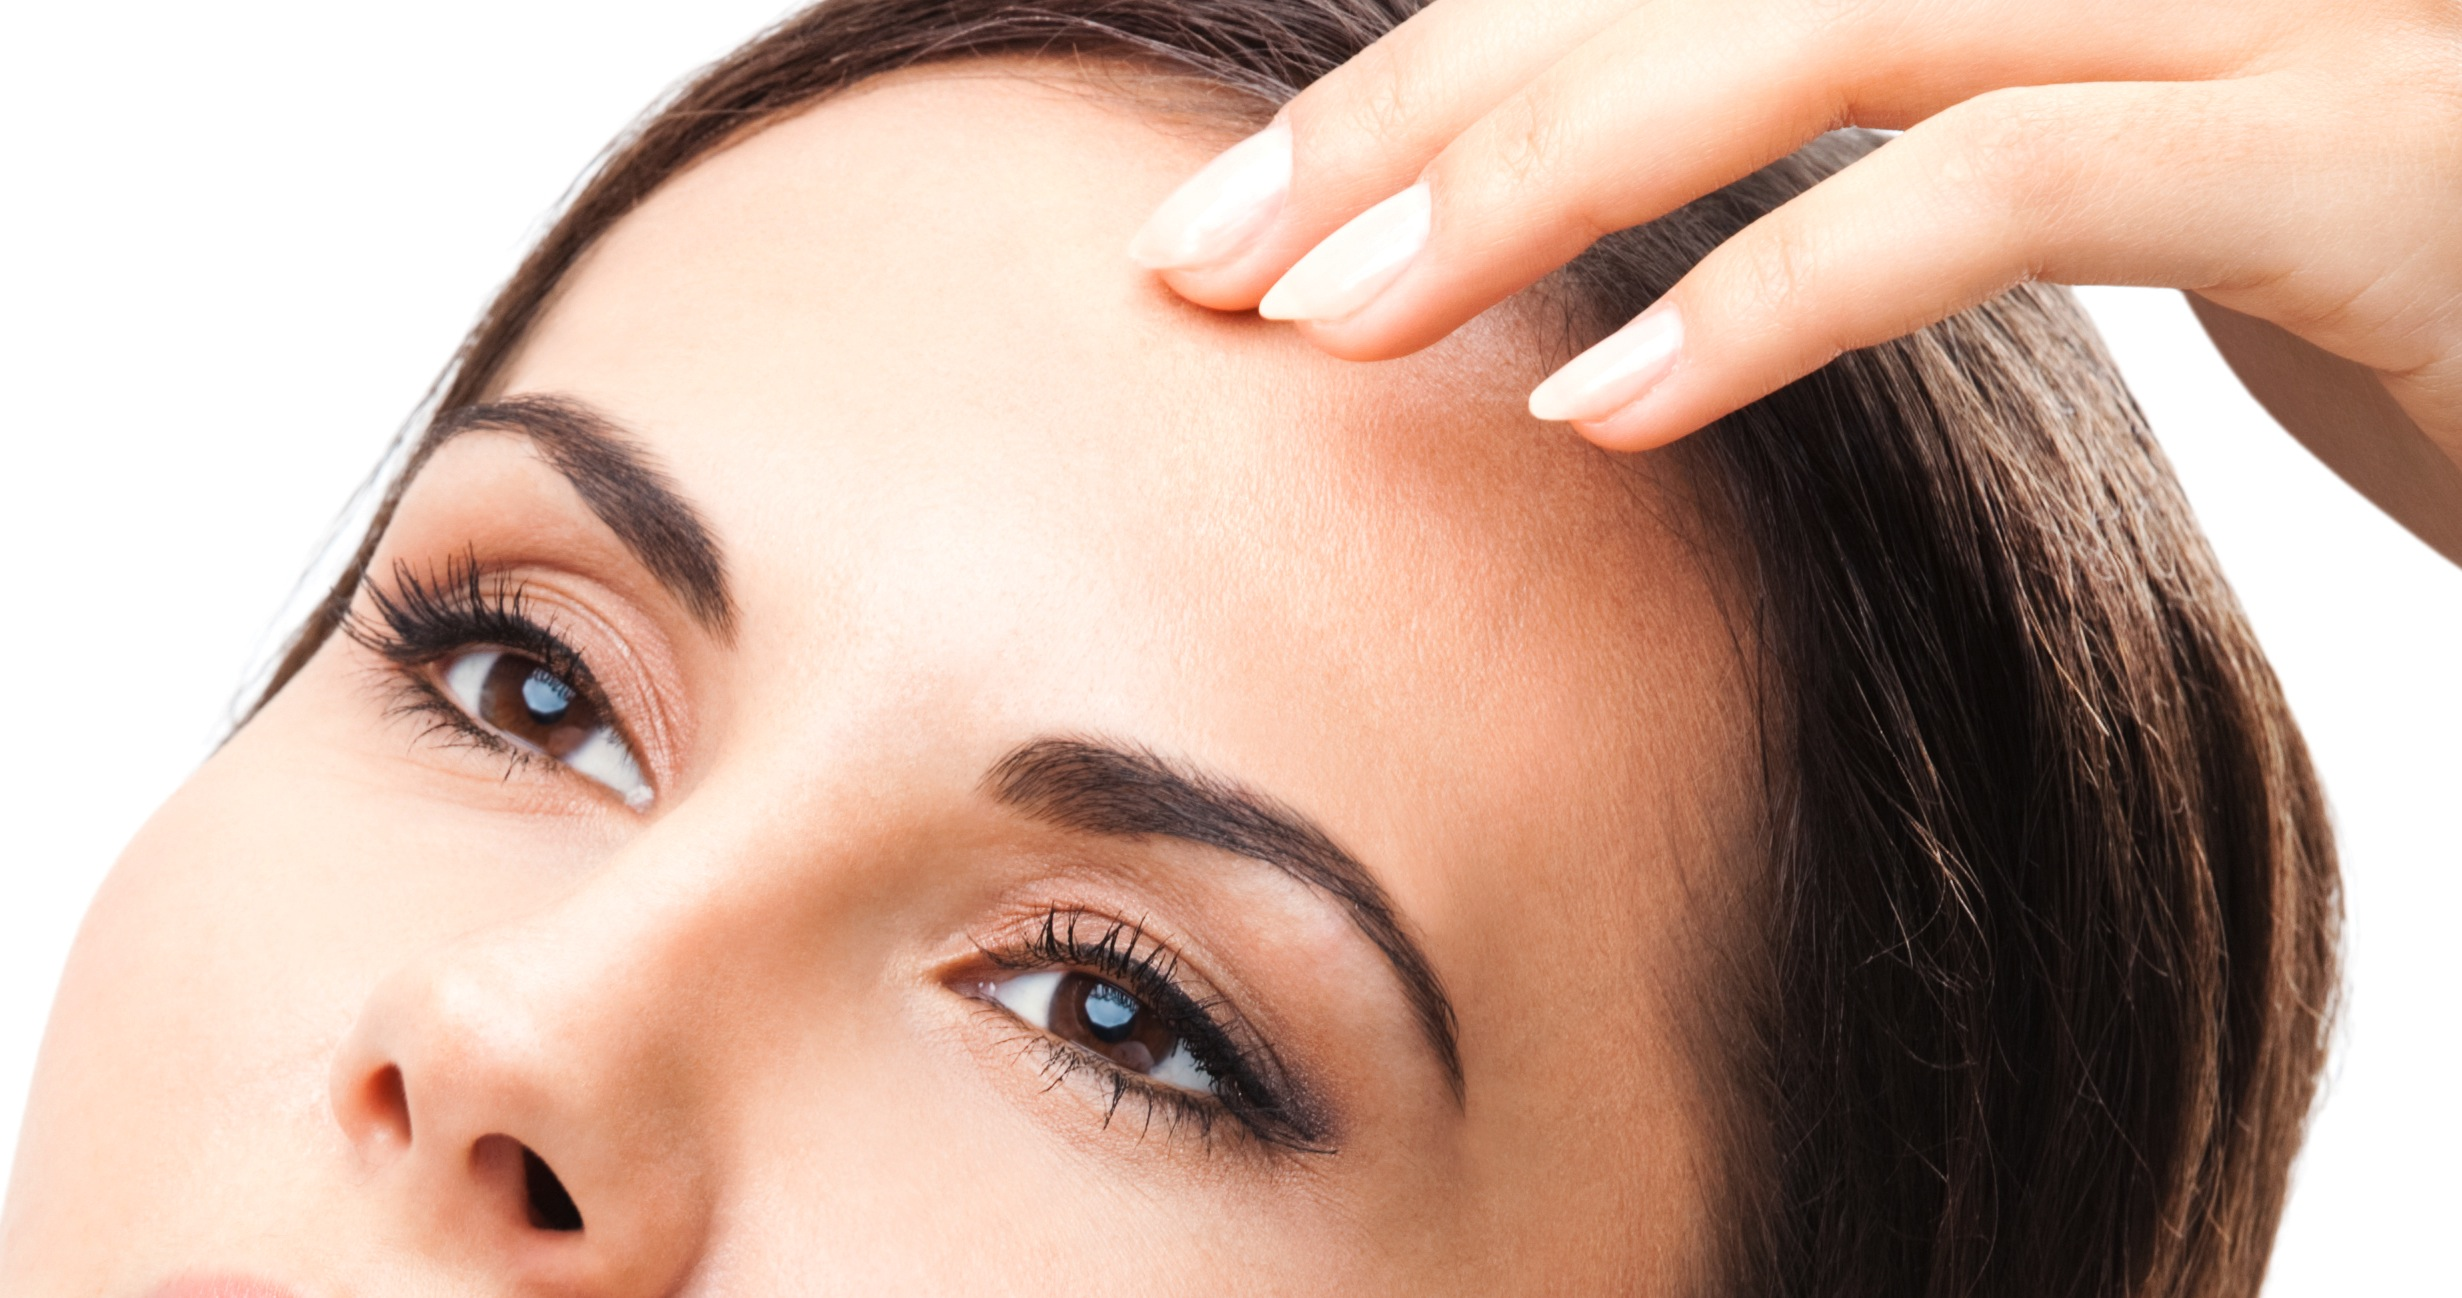 Finding a good Brow Lift Specialist Melbourne